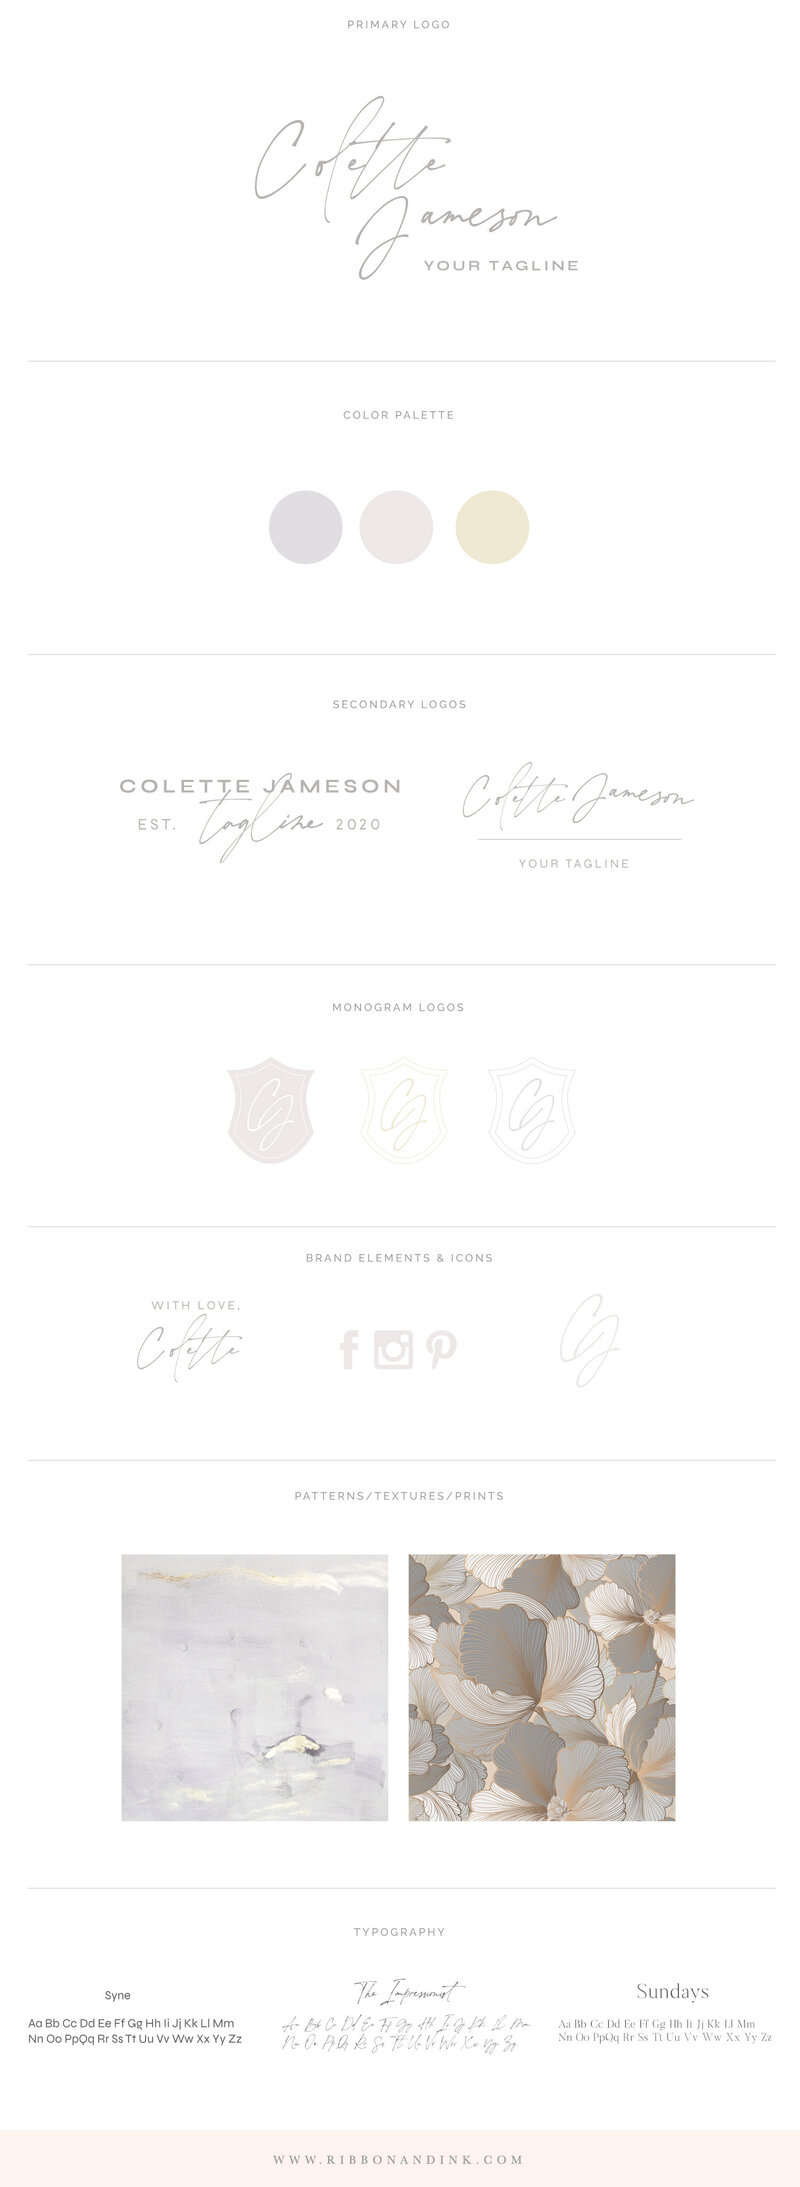 branding-for-small-creative-businesses-branding-board-identity-fine-art-wedding-business-photographer-calligraphy-neutral-branding-for-women-Colette_BrandBoard_v01